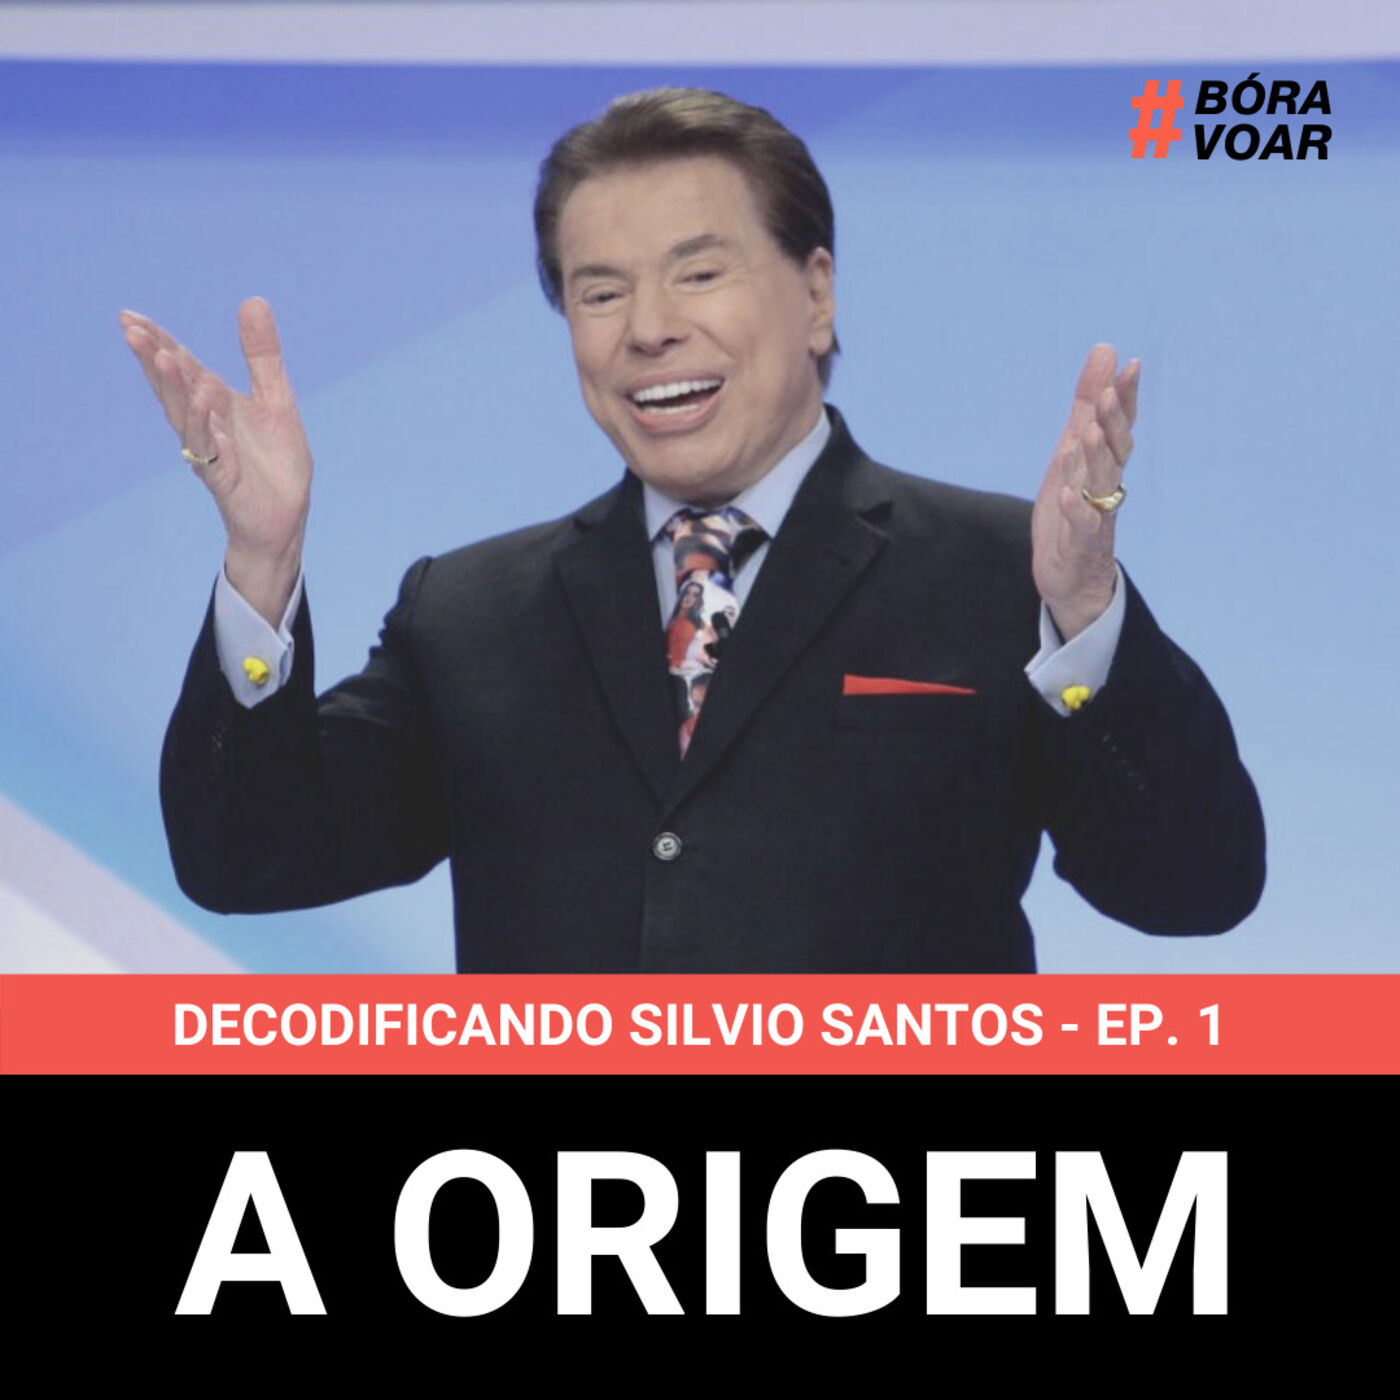 Decodificando Silvio Santos - Episódio 1